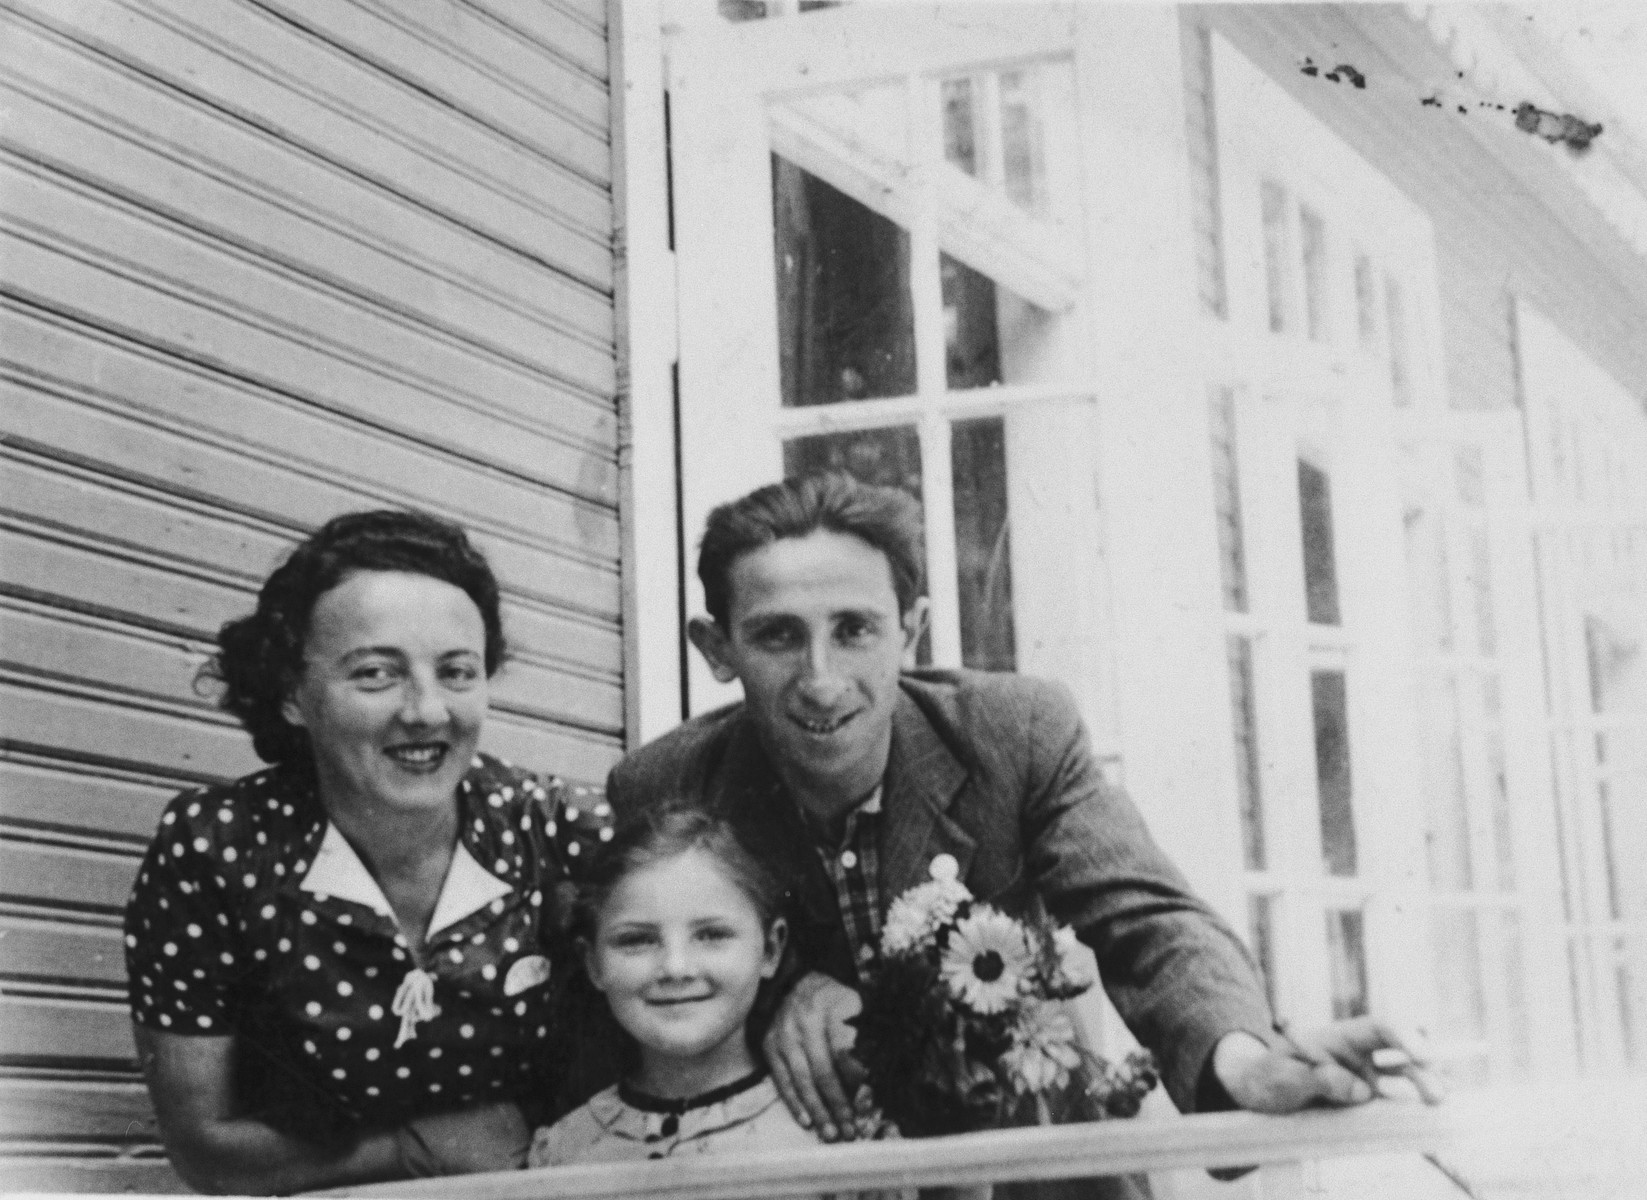 The Storch family looks over the railing of a guest house in Domaczewo.  Pictured are Heniek, Genia and Helena Storch.  This is the last holiday Genia and Helena spent with Heniek.